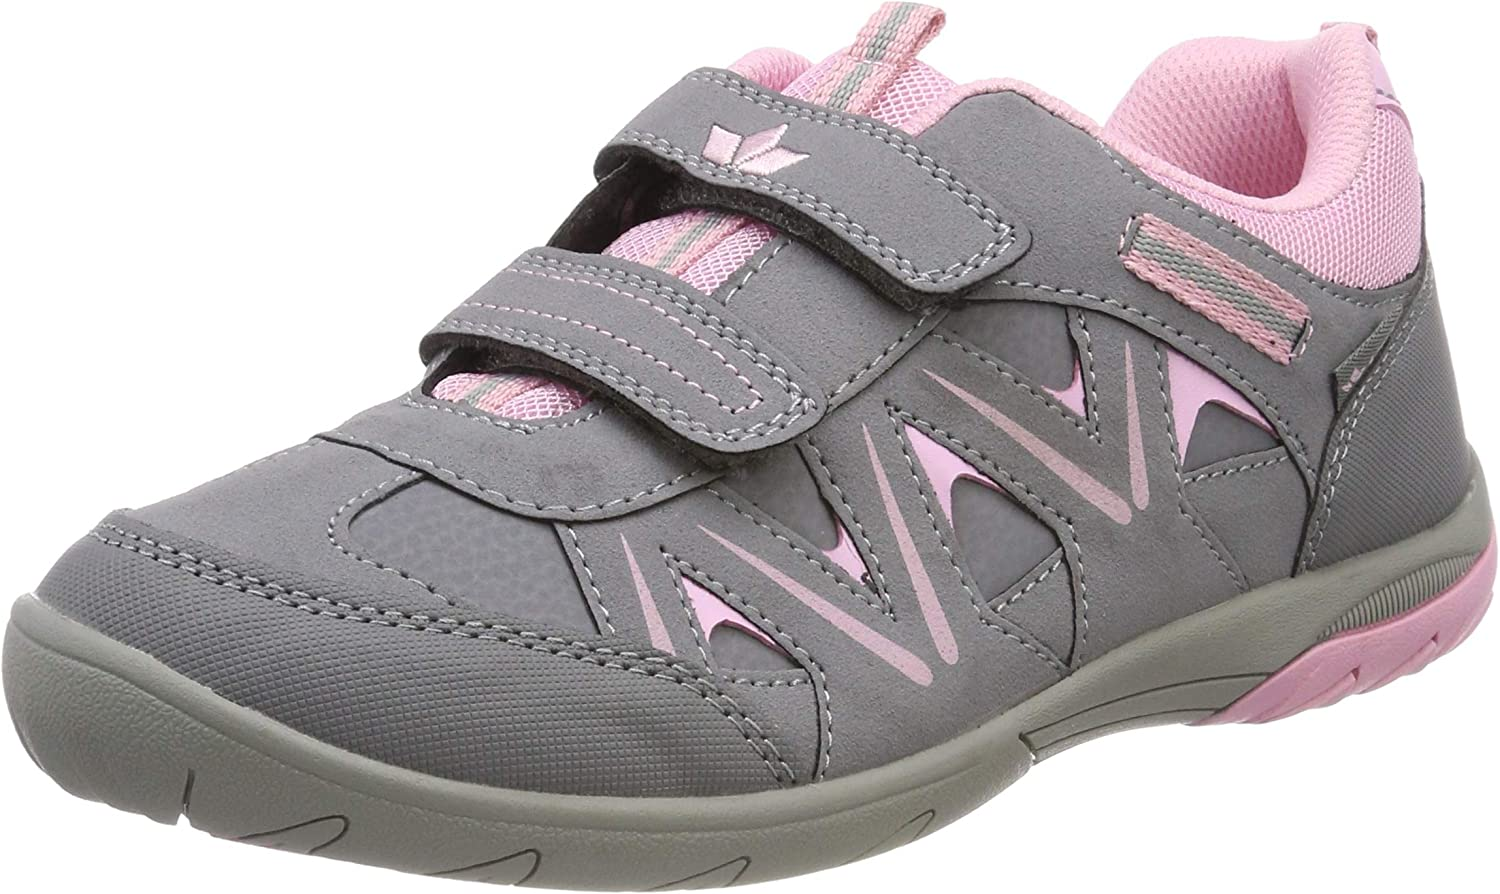 Lico Women's Kolibri V H Low-Top Sneakers